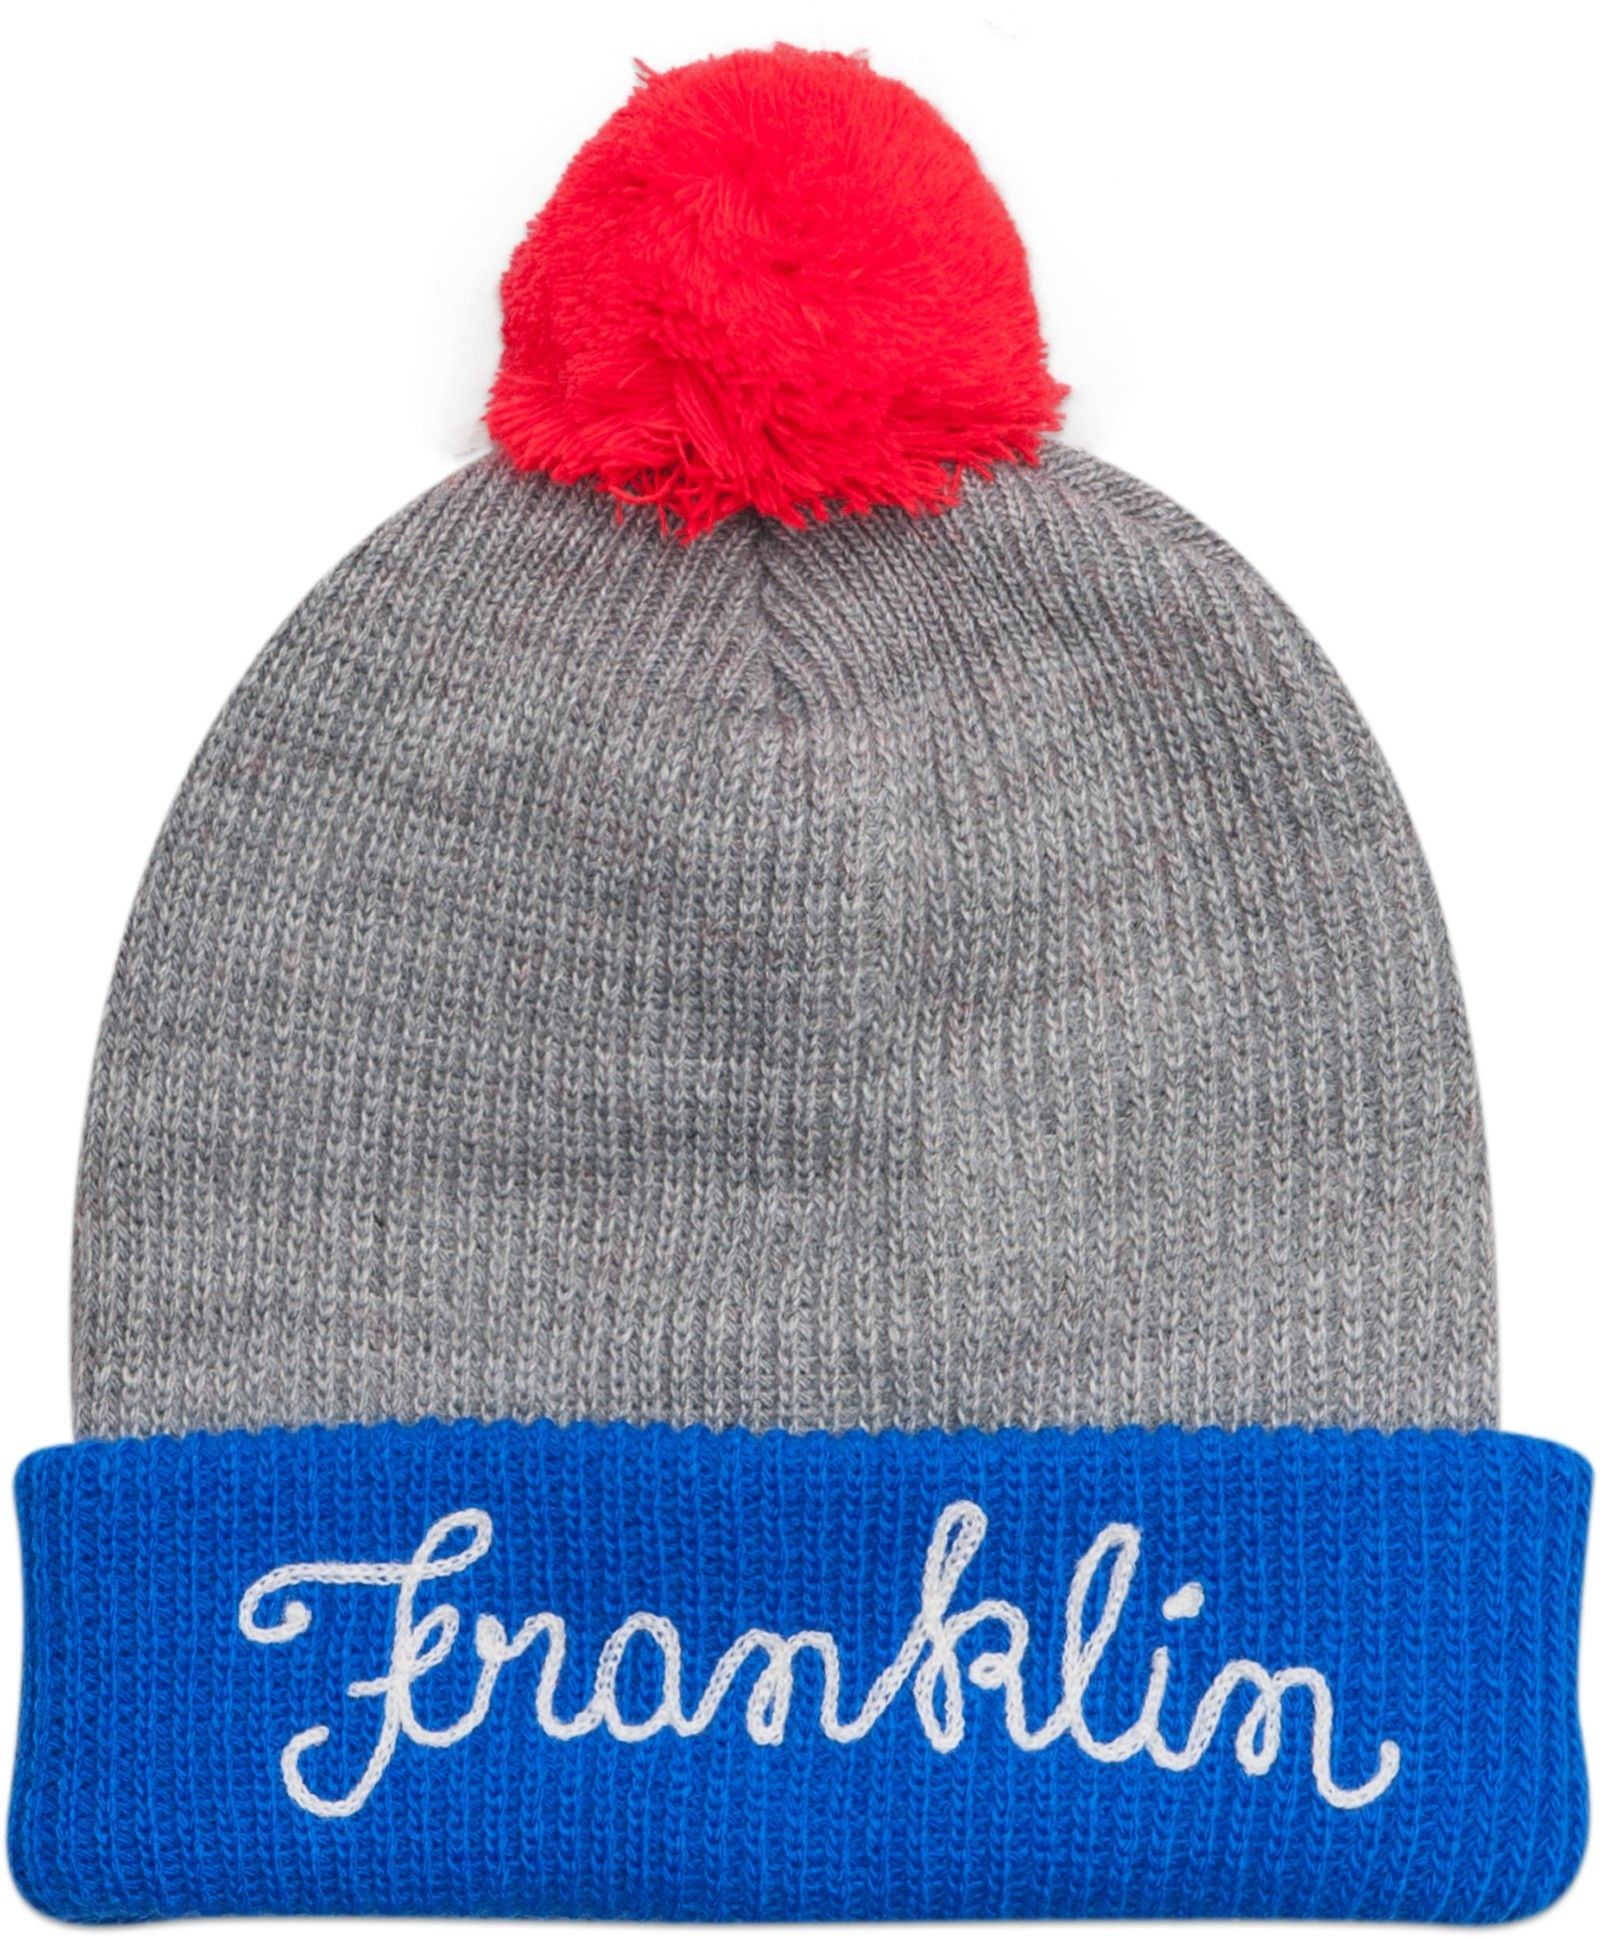 18ddf14eb96 Snuggly hat with pom-pom  FW13